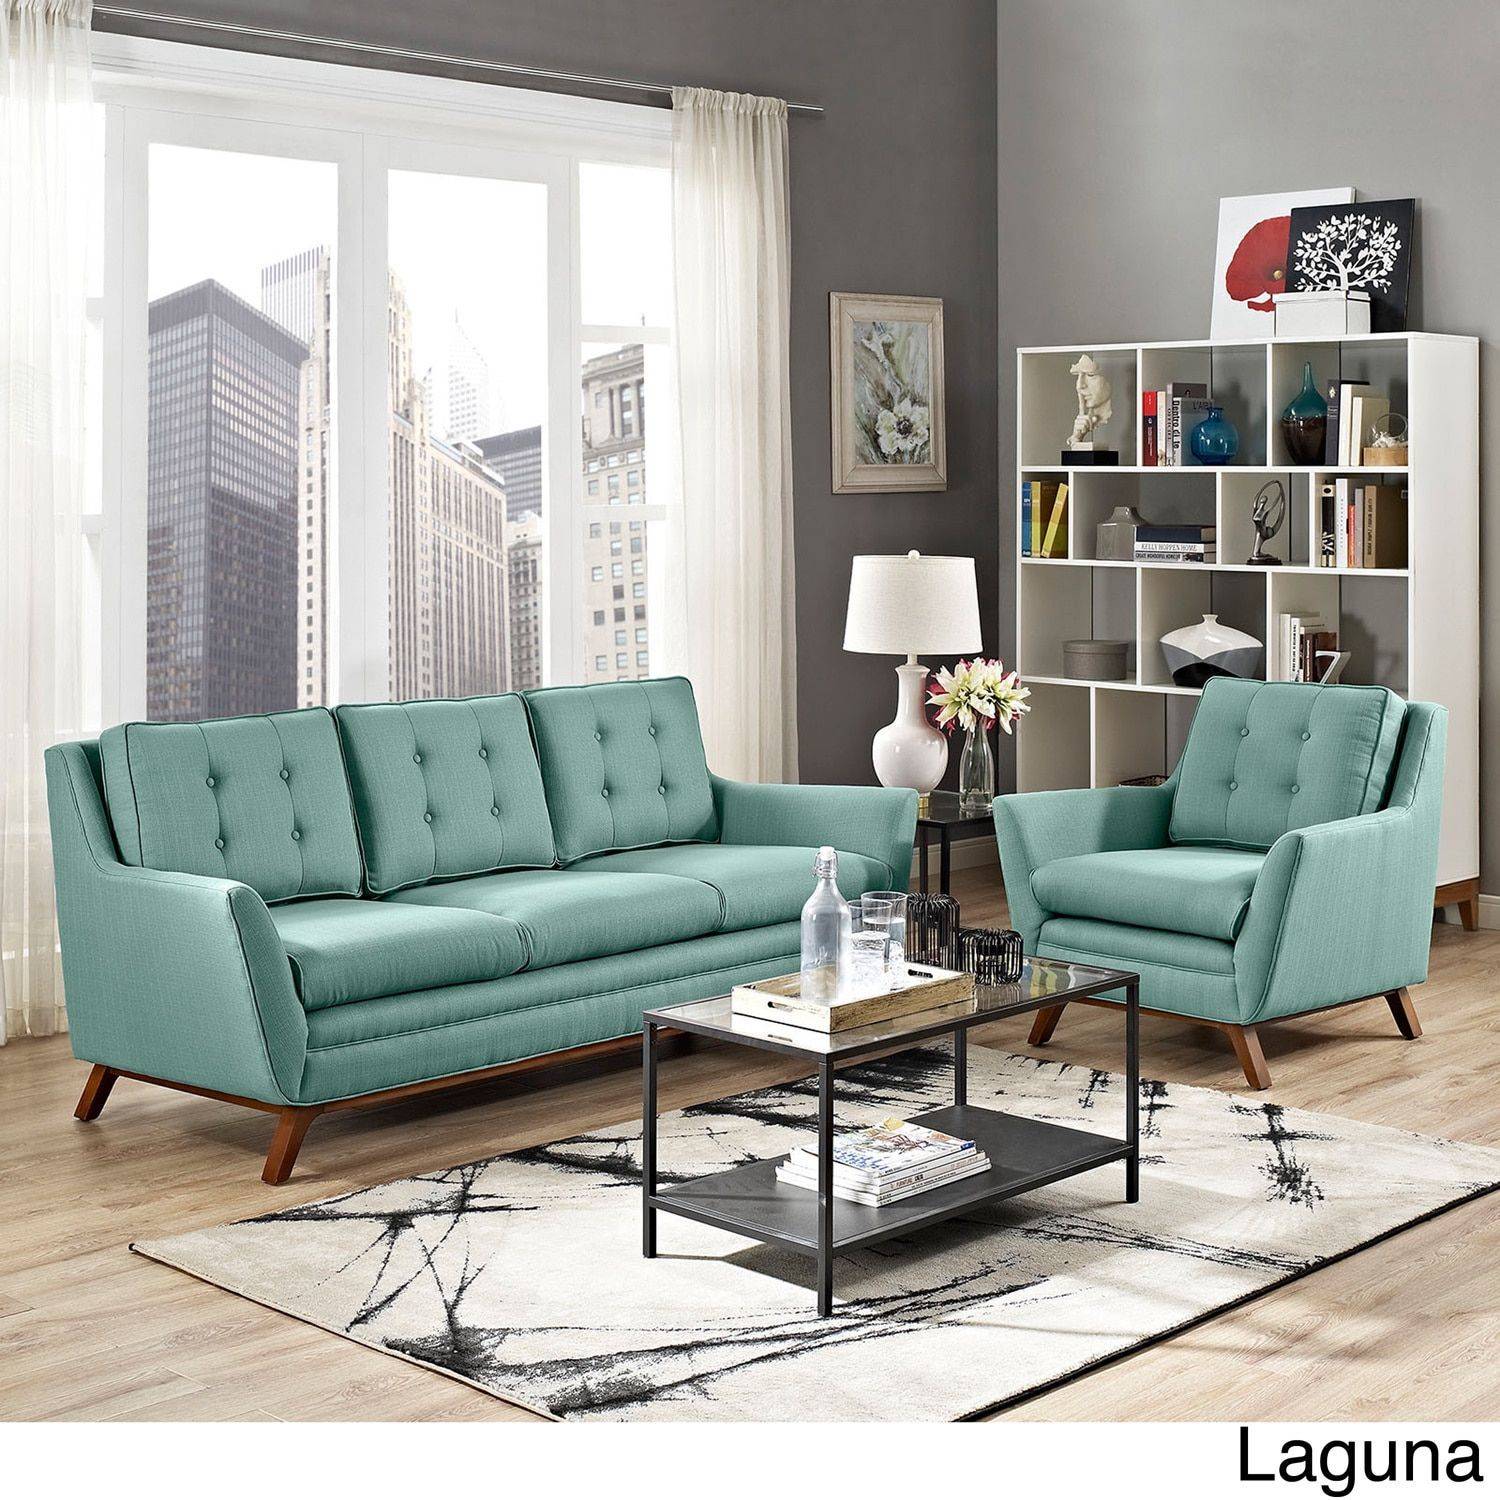 Room Modway Beguile Tufted Fabric Armchair